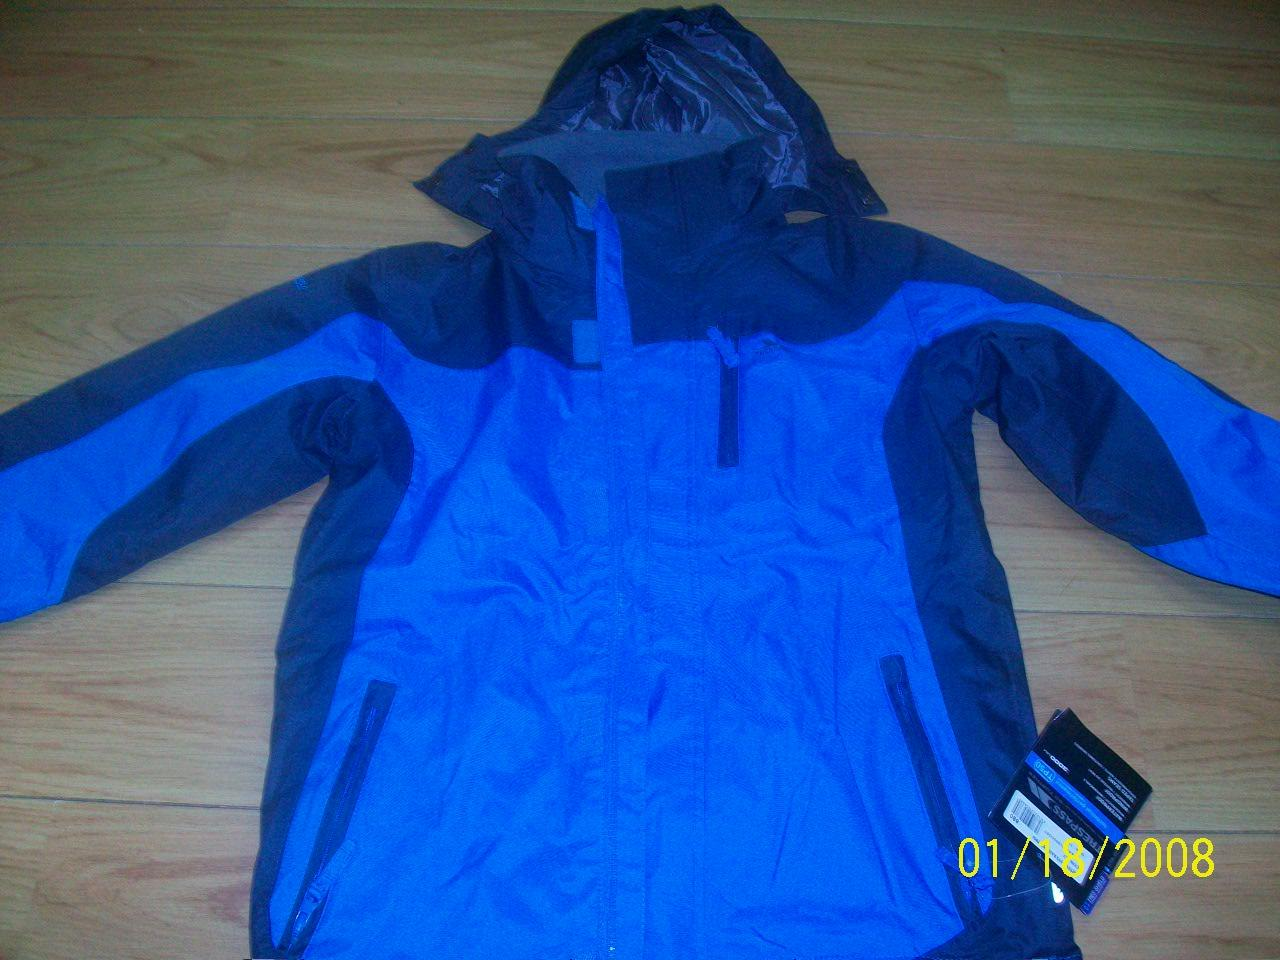 Waterproof winter jackets in Women's Jackets & Coats at Bizrate